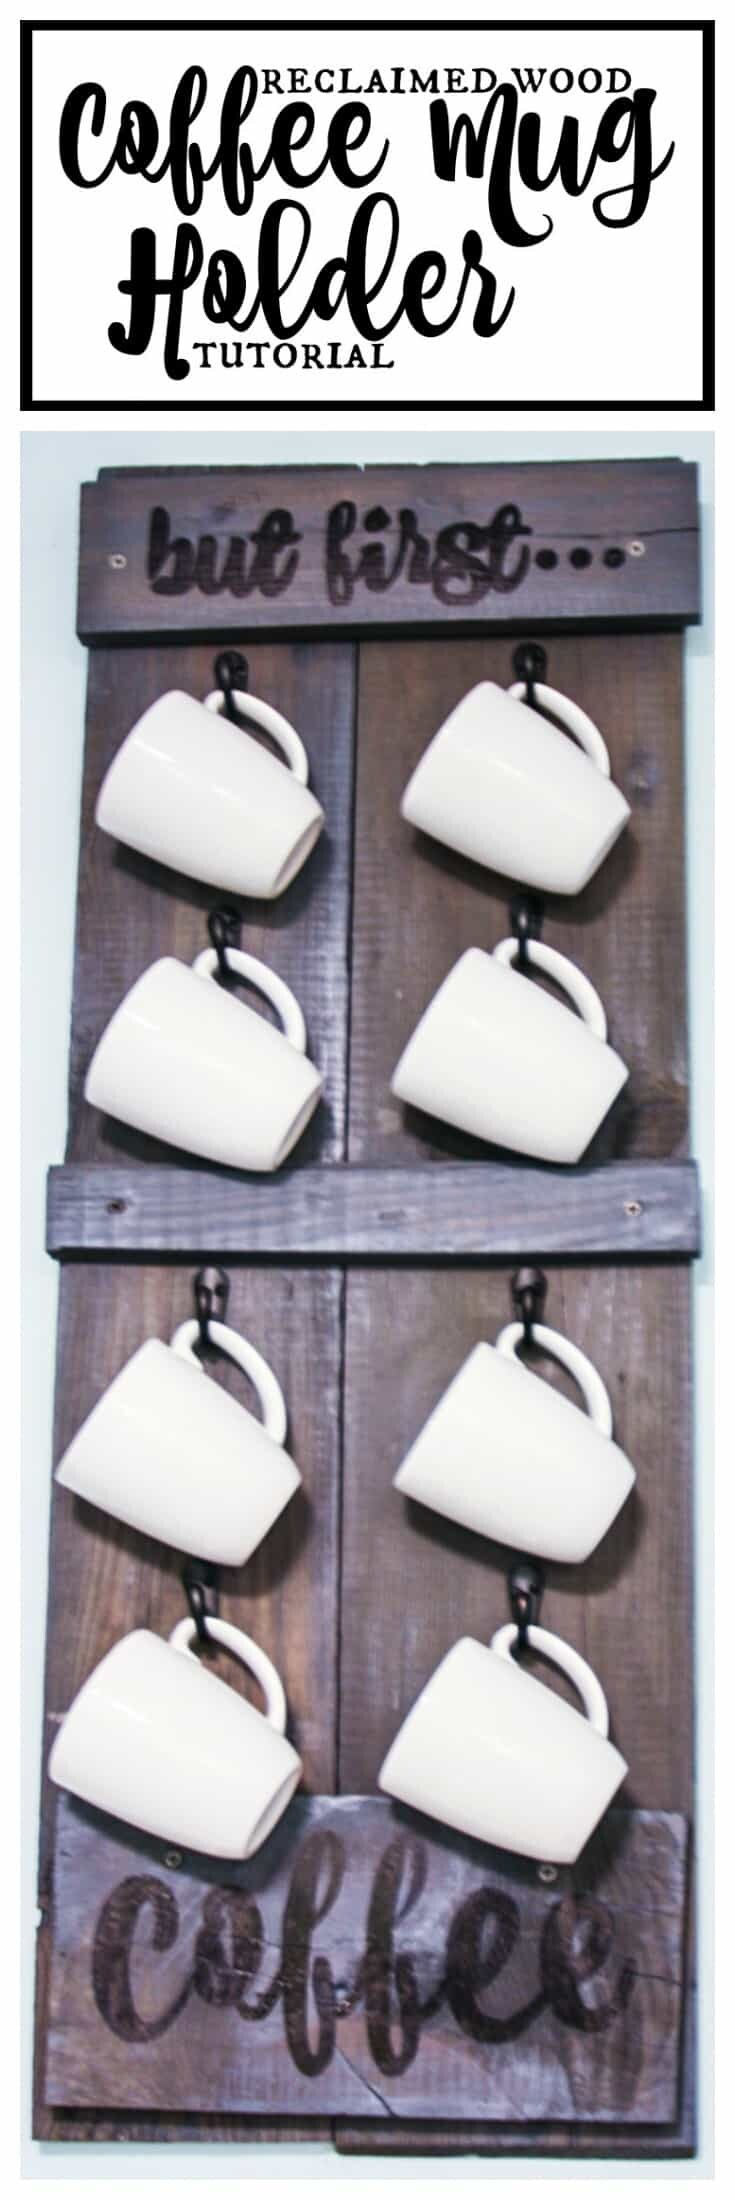 Reclaimed Wood Shutter Coffee Mug Holder Tutorial - Rustic, Vintage farmhouse chic with a touch of fun